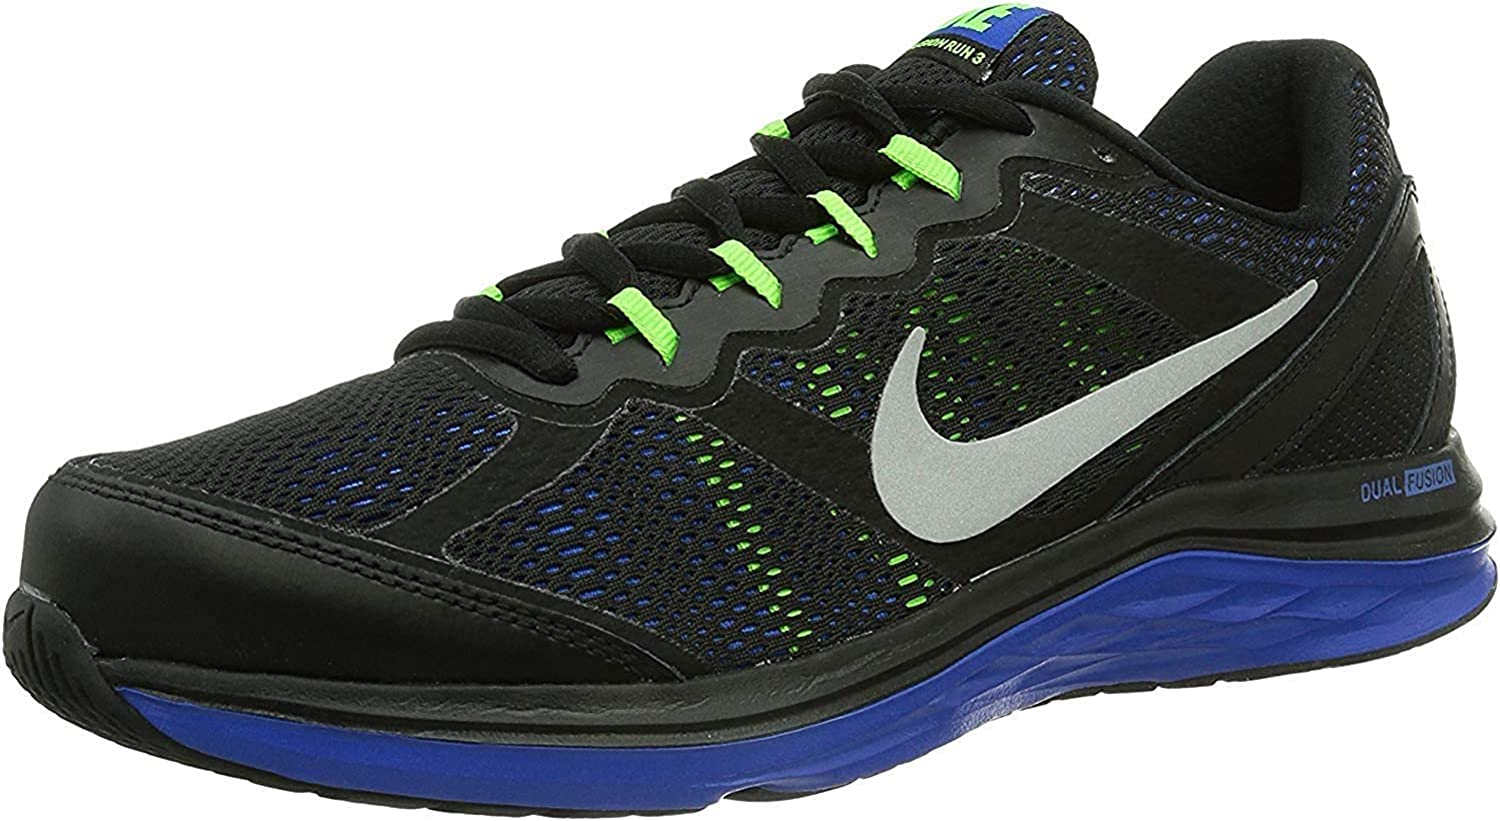 incluir Enorme Viaje  Amazon.com | Nike Men's Dual Fusion Run 3 Running Shoes | Tennis & Racquet  Sports